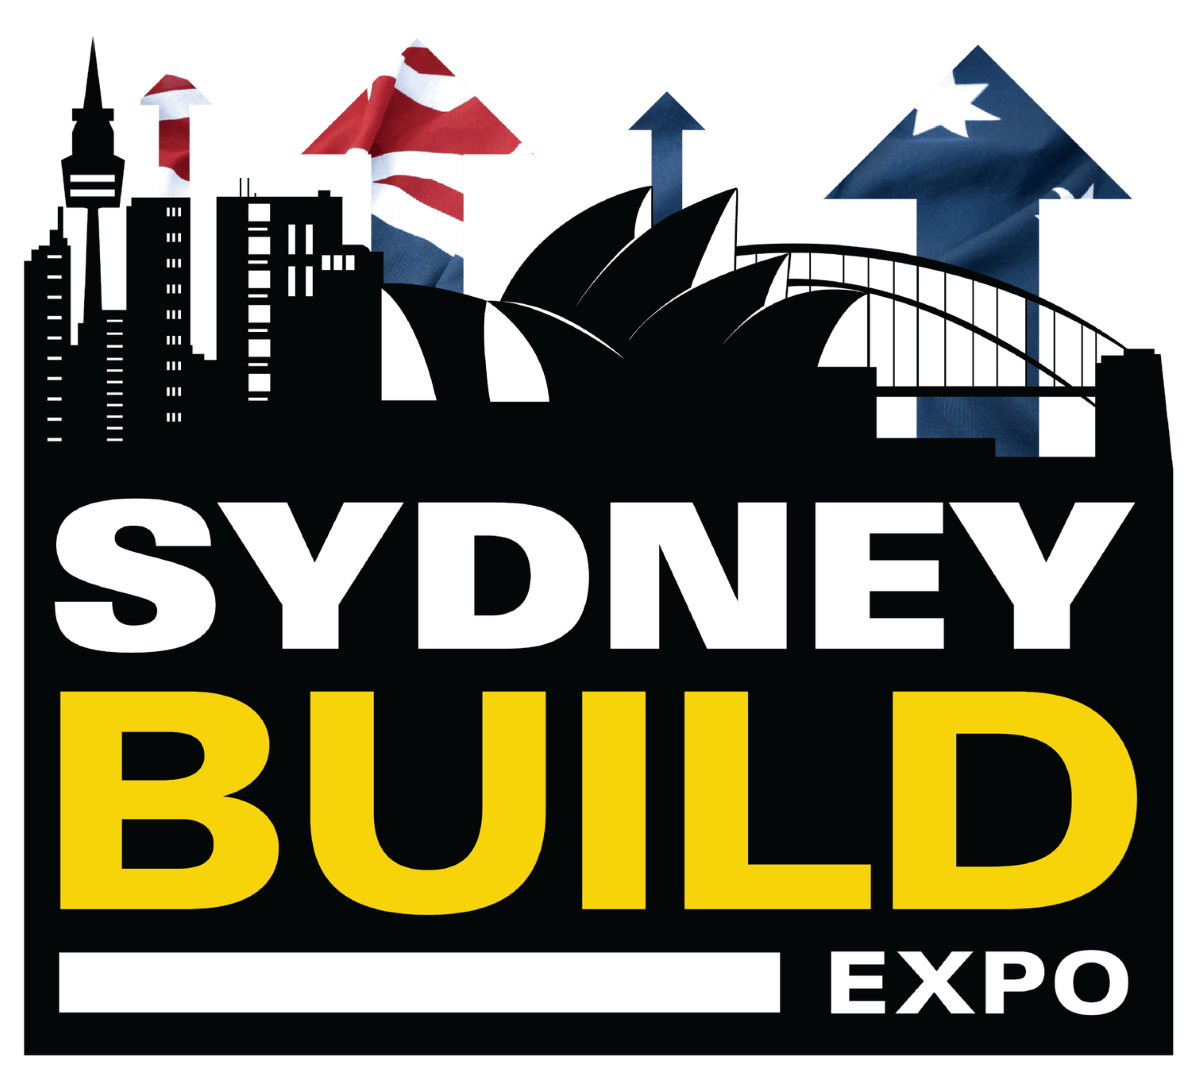 New Event Dates Announcedfor Sydney Build Expo, February 3rd & 4th, 2021